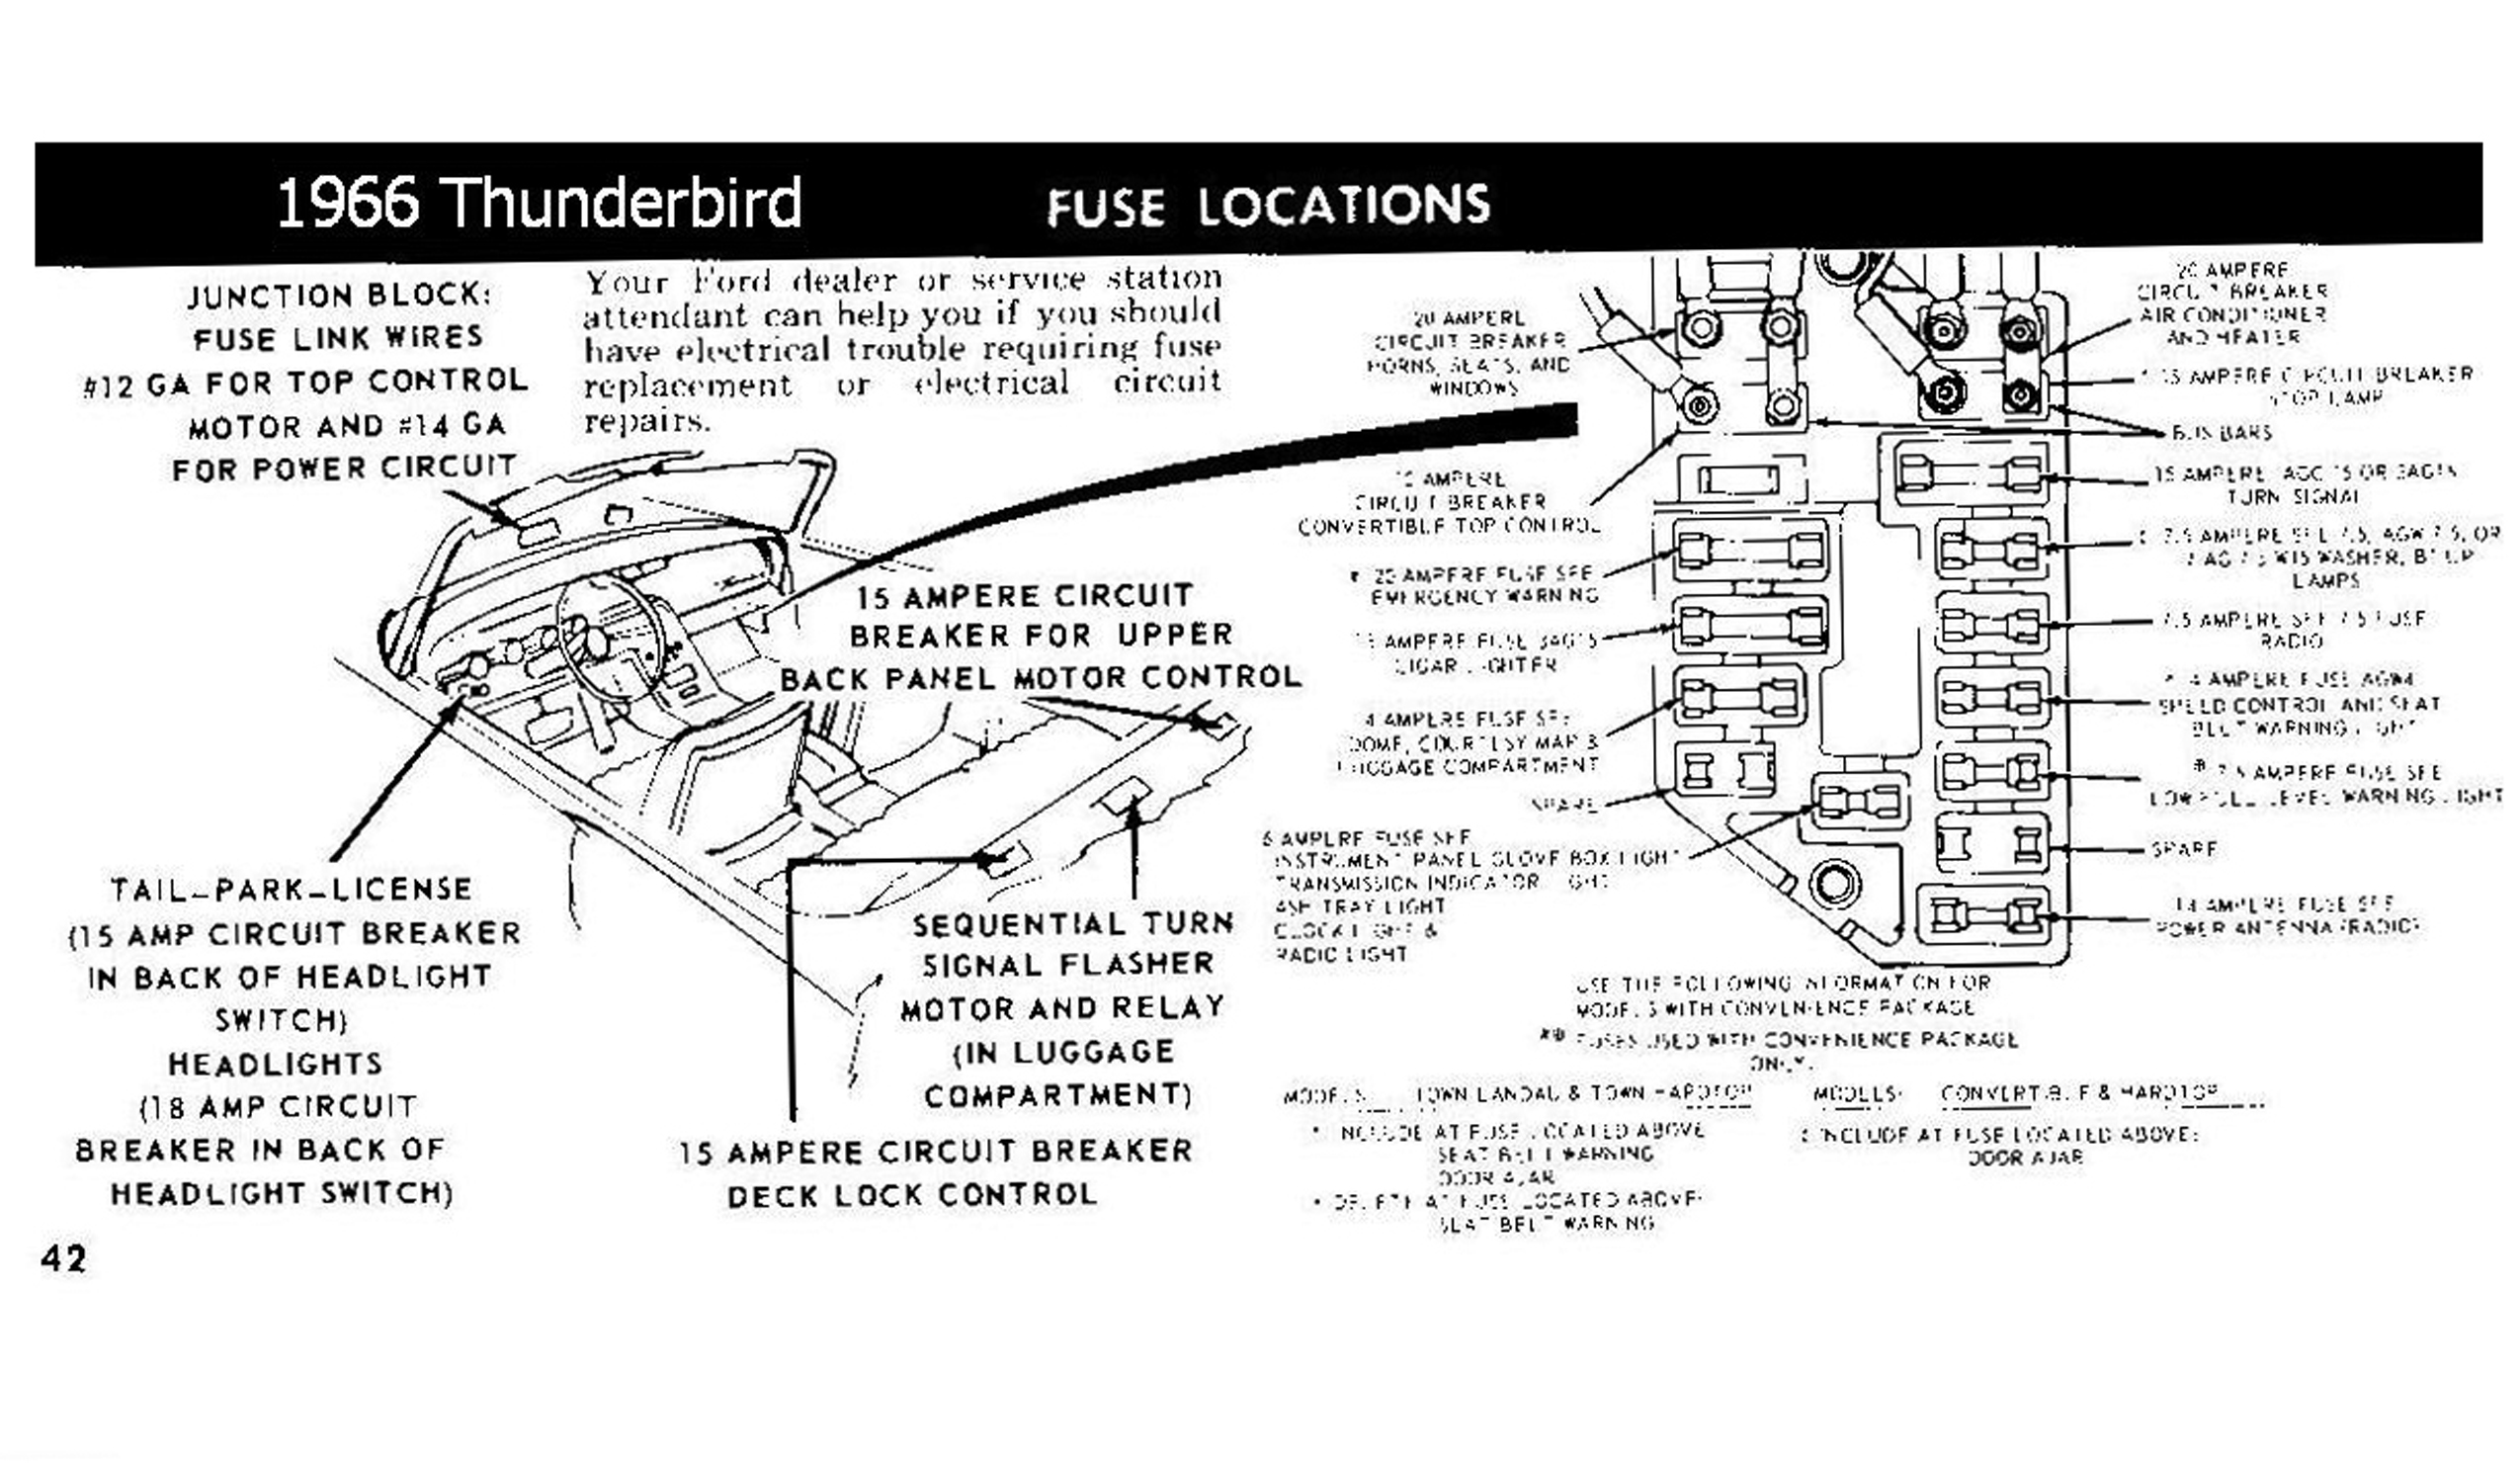 1996 ford thunderbird wiring diagram 1966 thunderbird wiring diagram